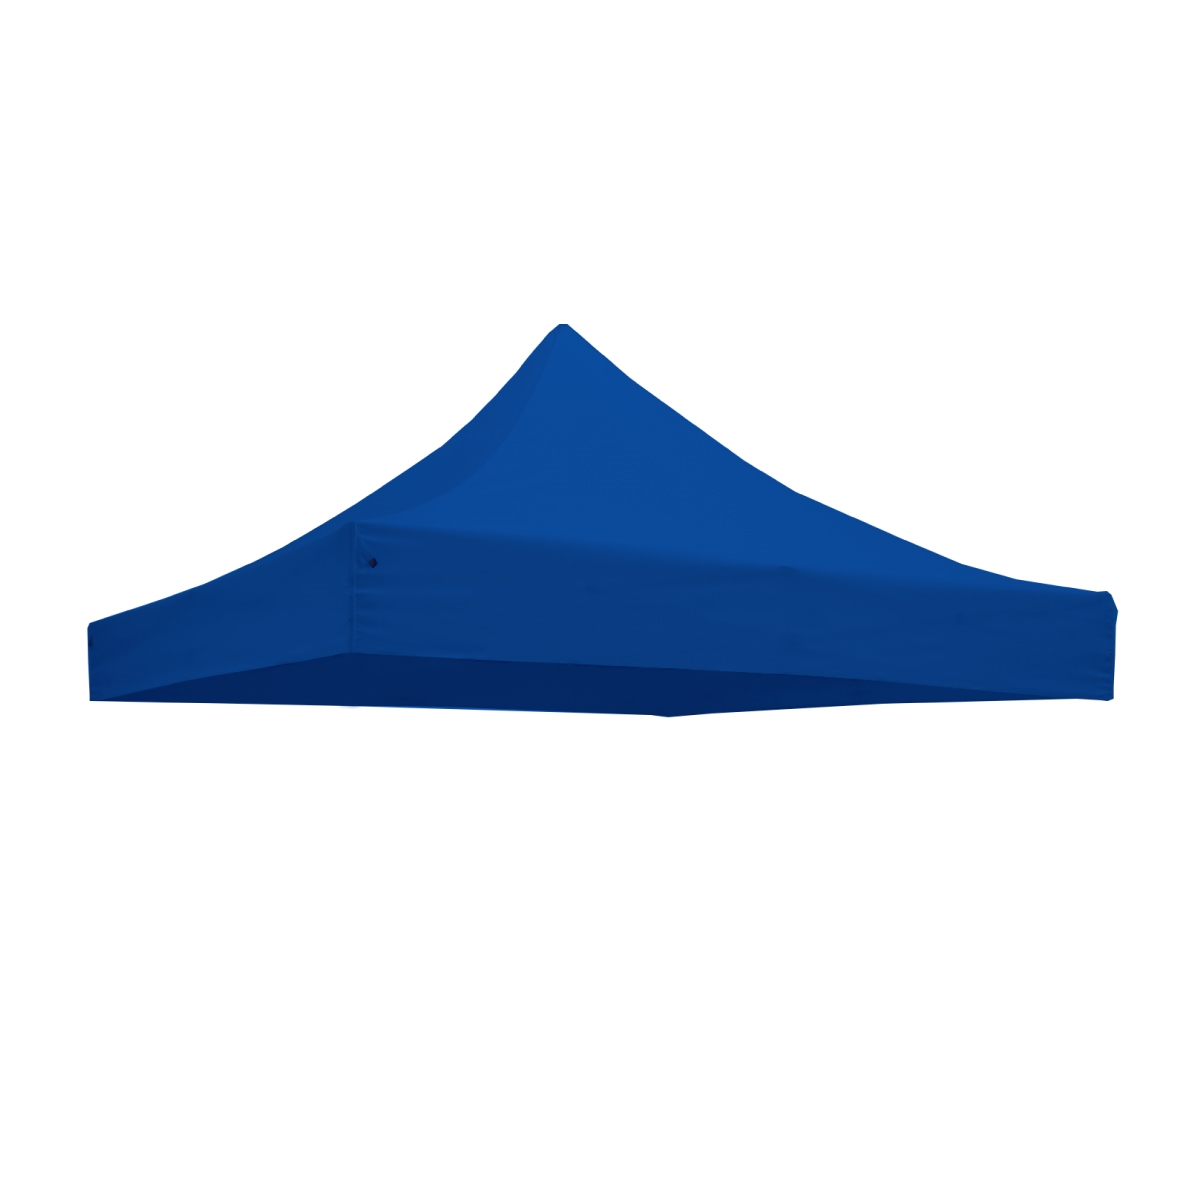 10' x 10' Blank Tent Canopy Only